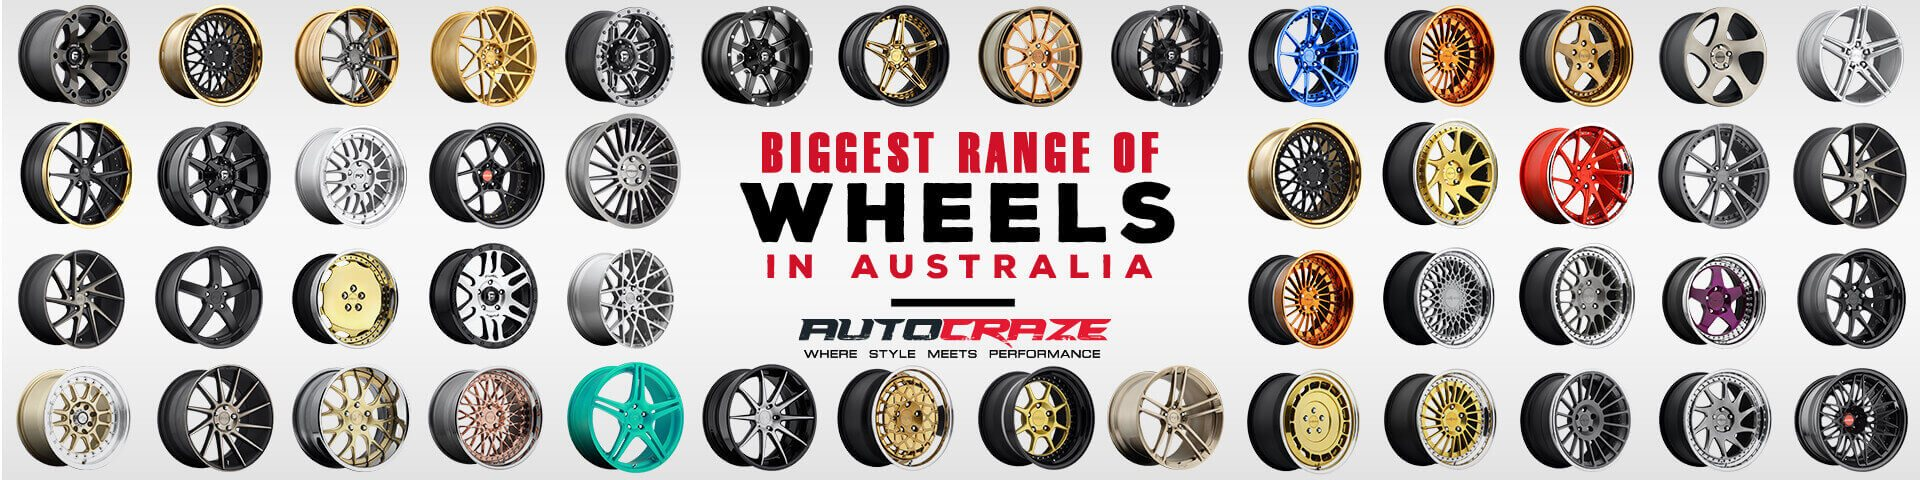 Biggest range of wheels in Australia | Autocraze